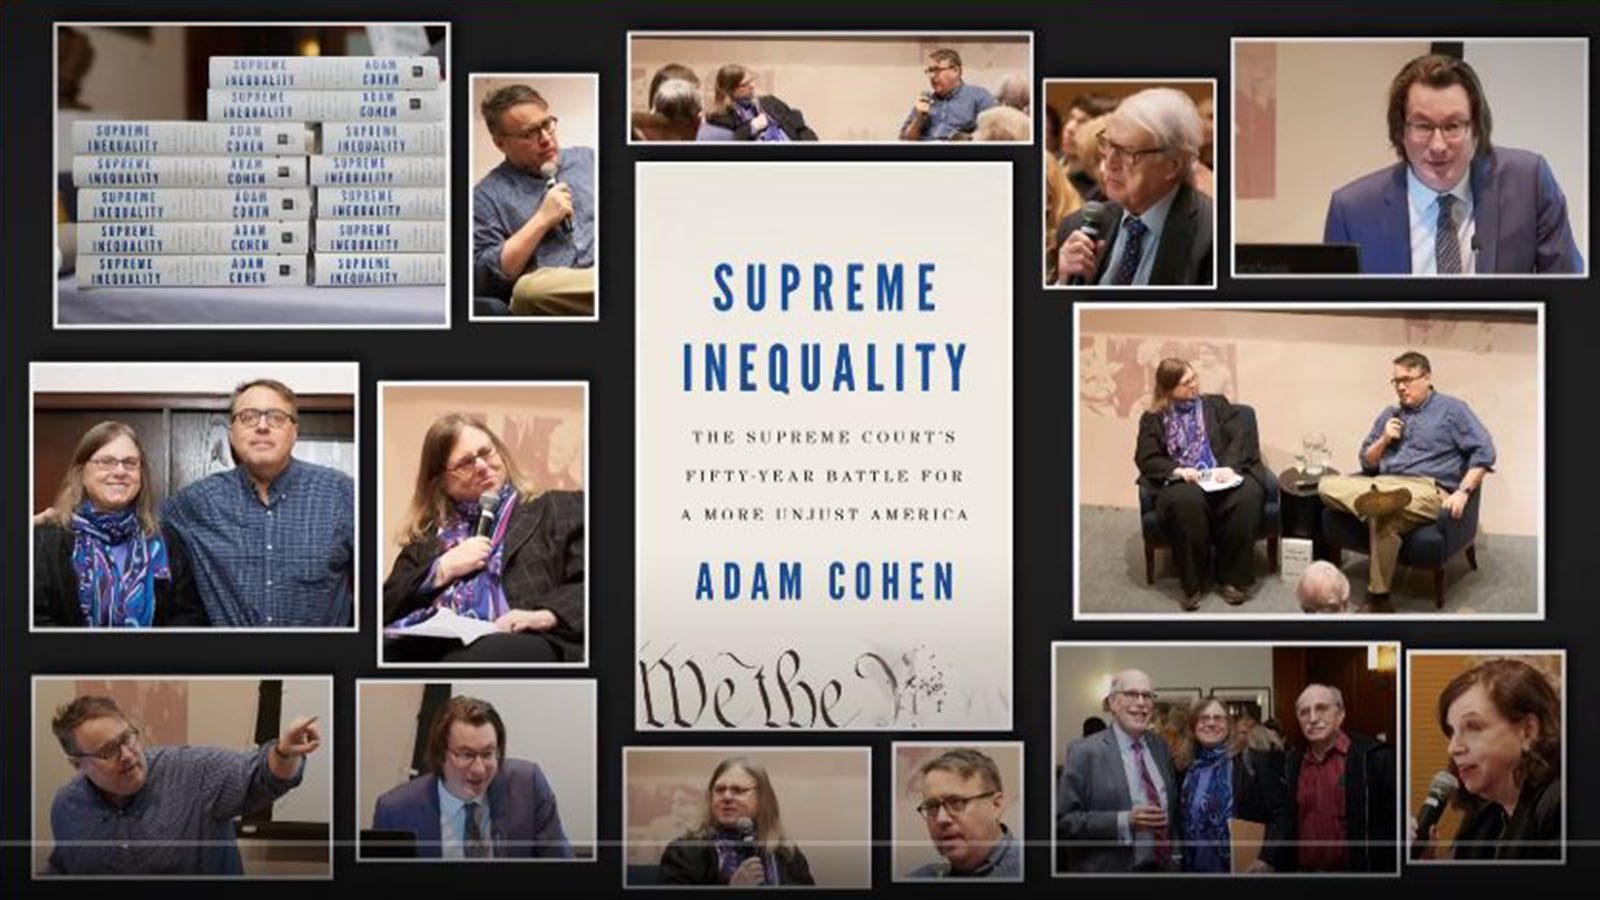 Supreme Inequality book cover